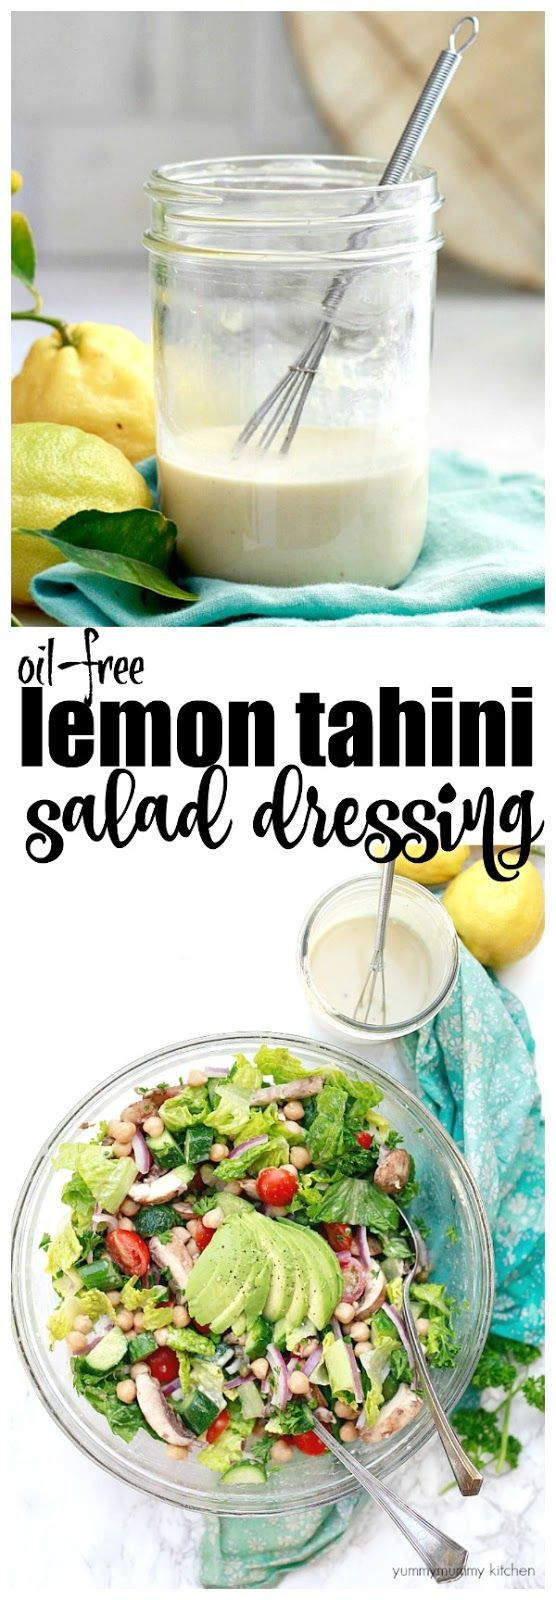 This delicious and easy vegan lemon tahini dressing is oil-free and perfect on salads. It's made with just a few simple ingredients like apple cider vinegar, tahini, maple, and lemon.